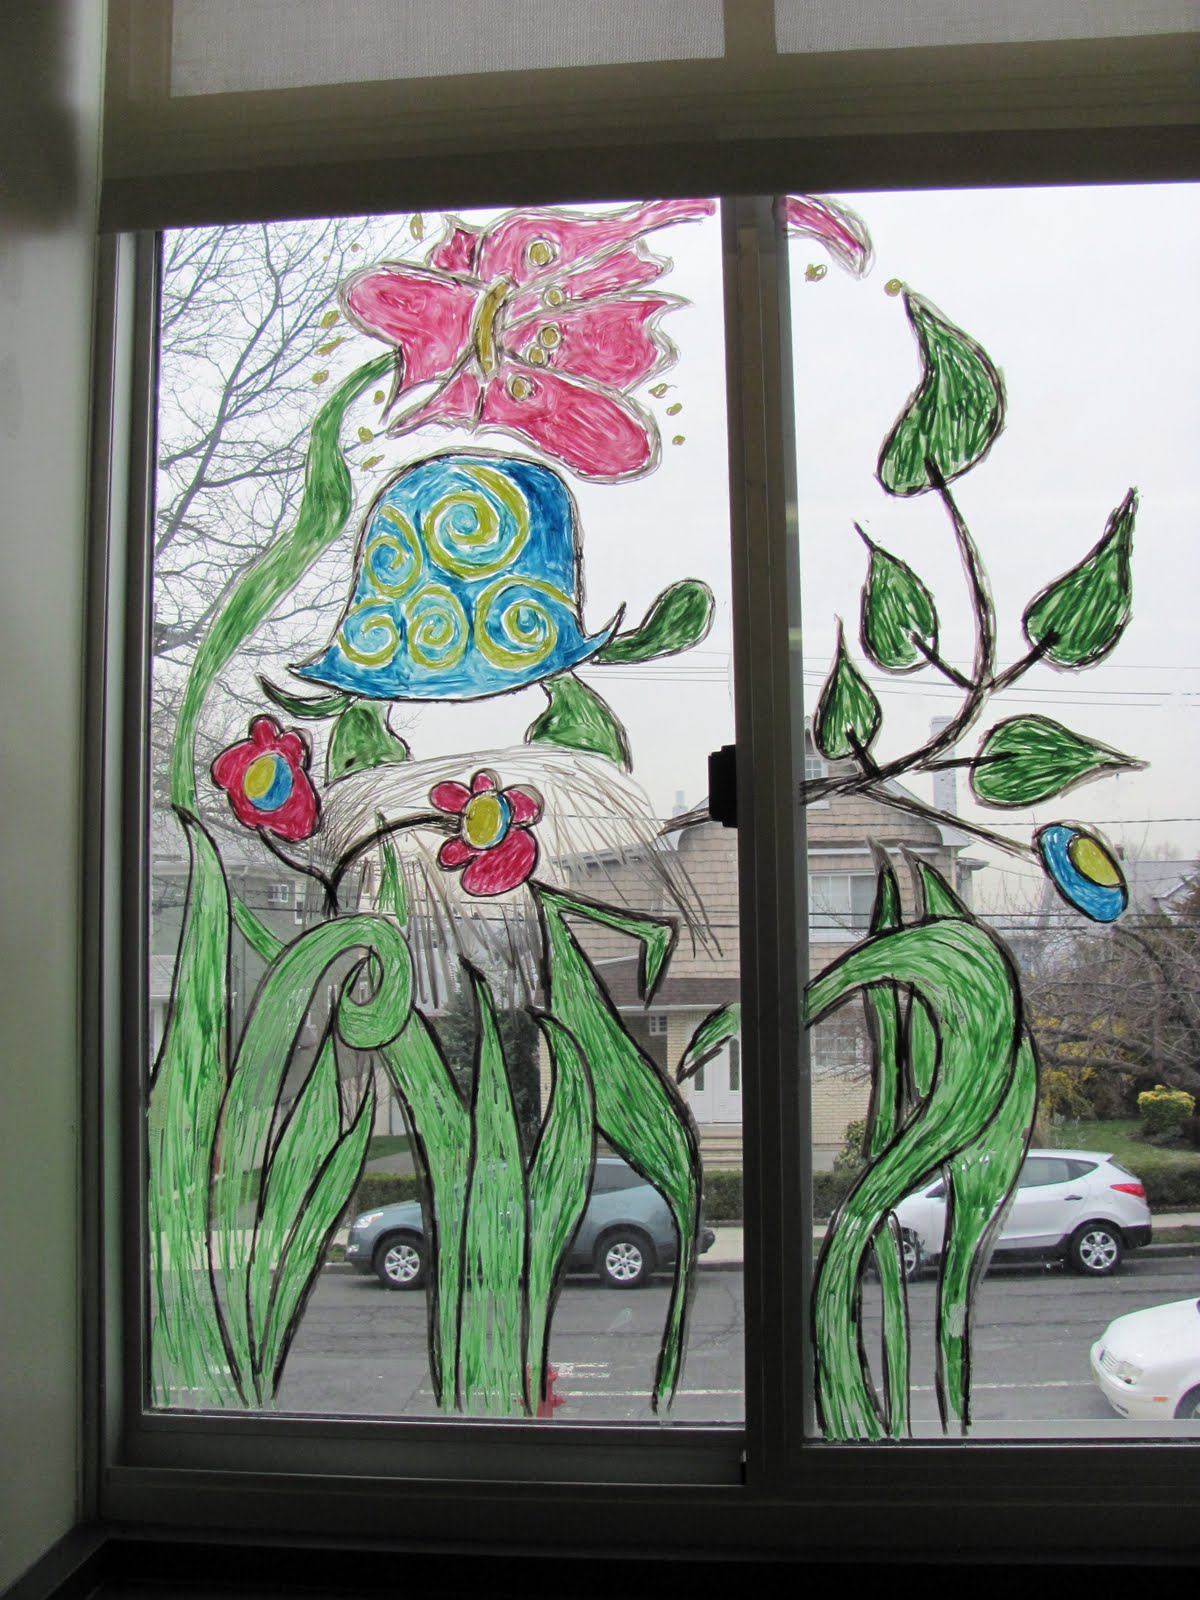 Classroom window decoration - I Painted Each Window In A Different Bright Design